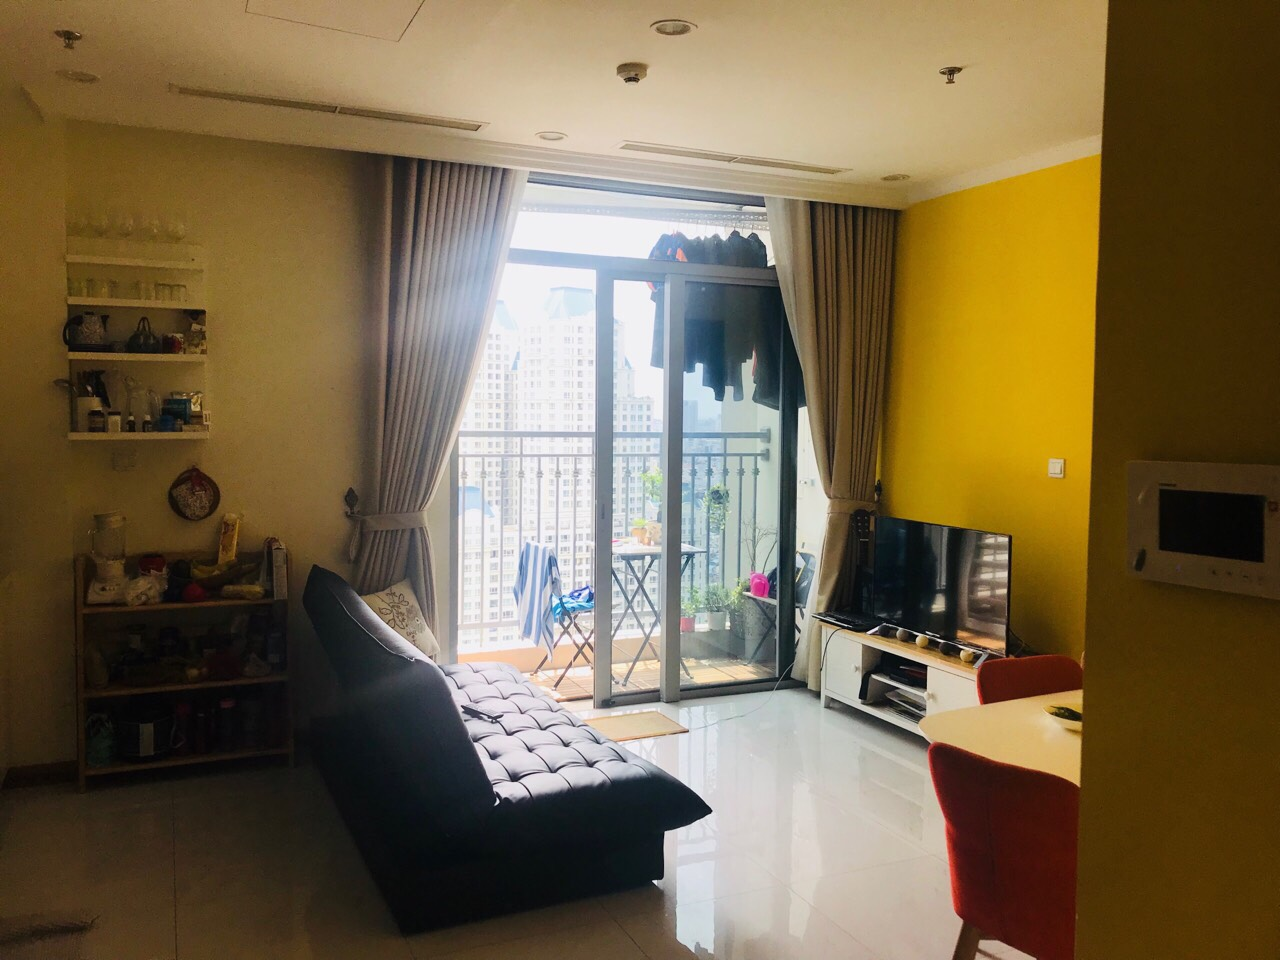 Apartment for rent BT1052280 (5)